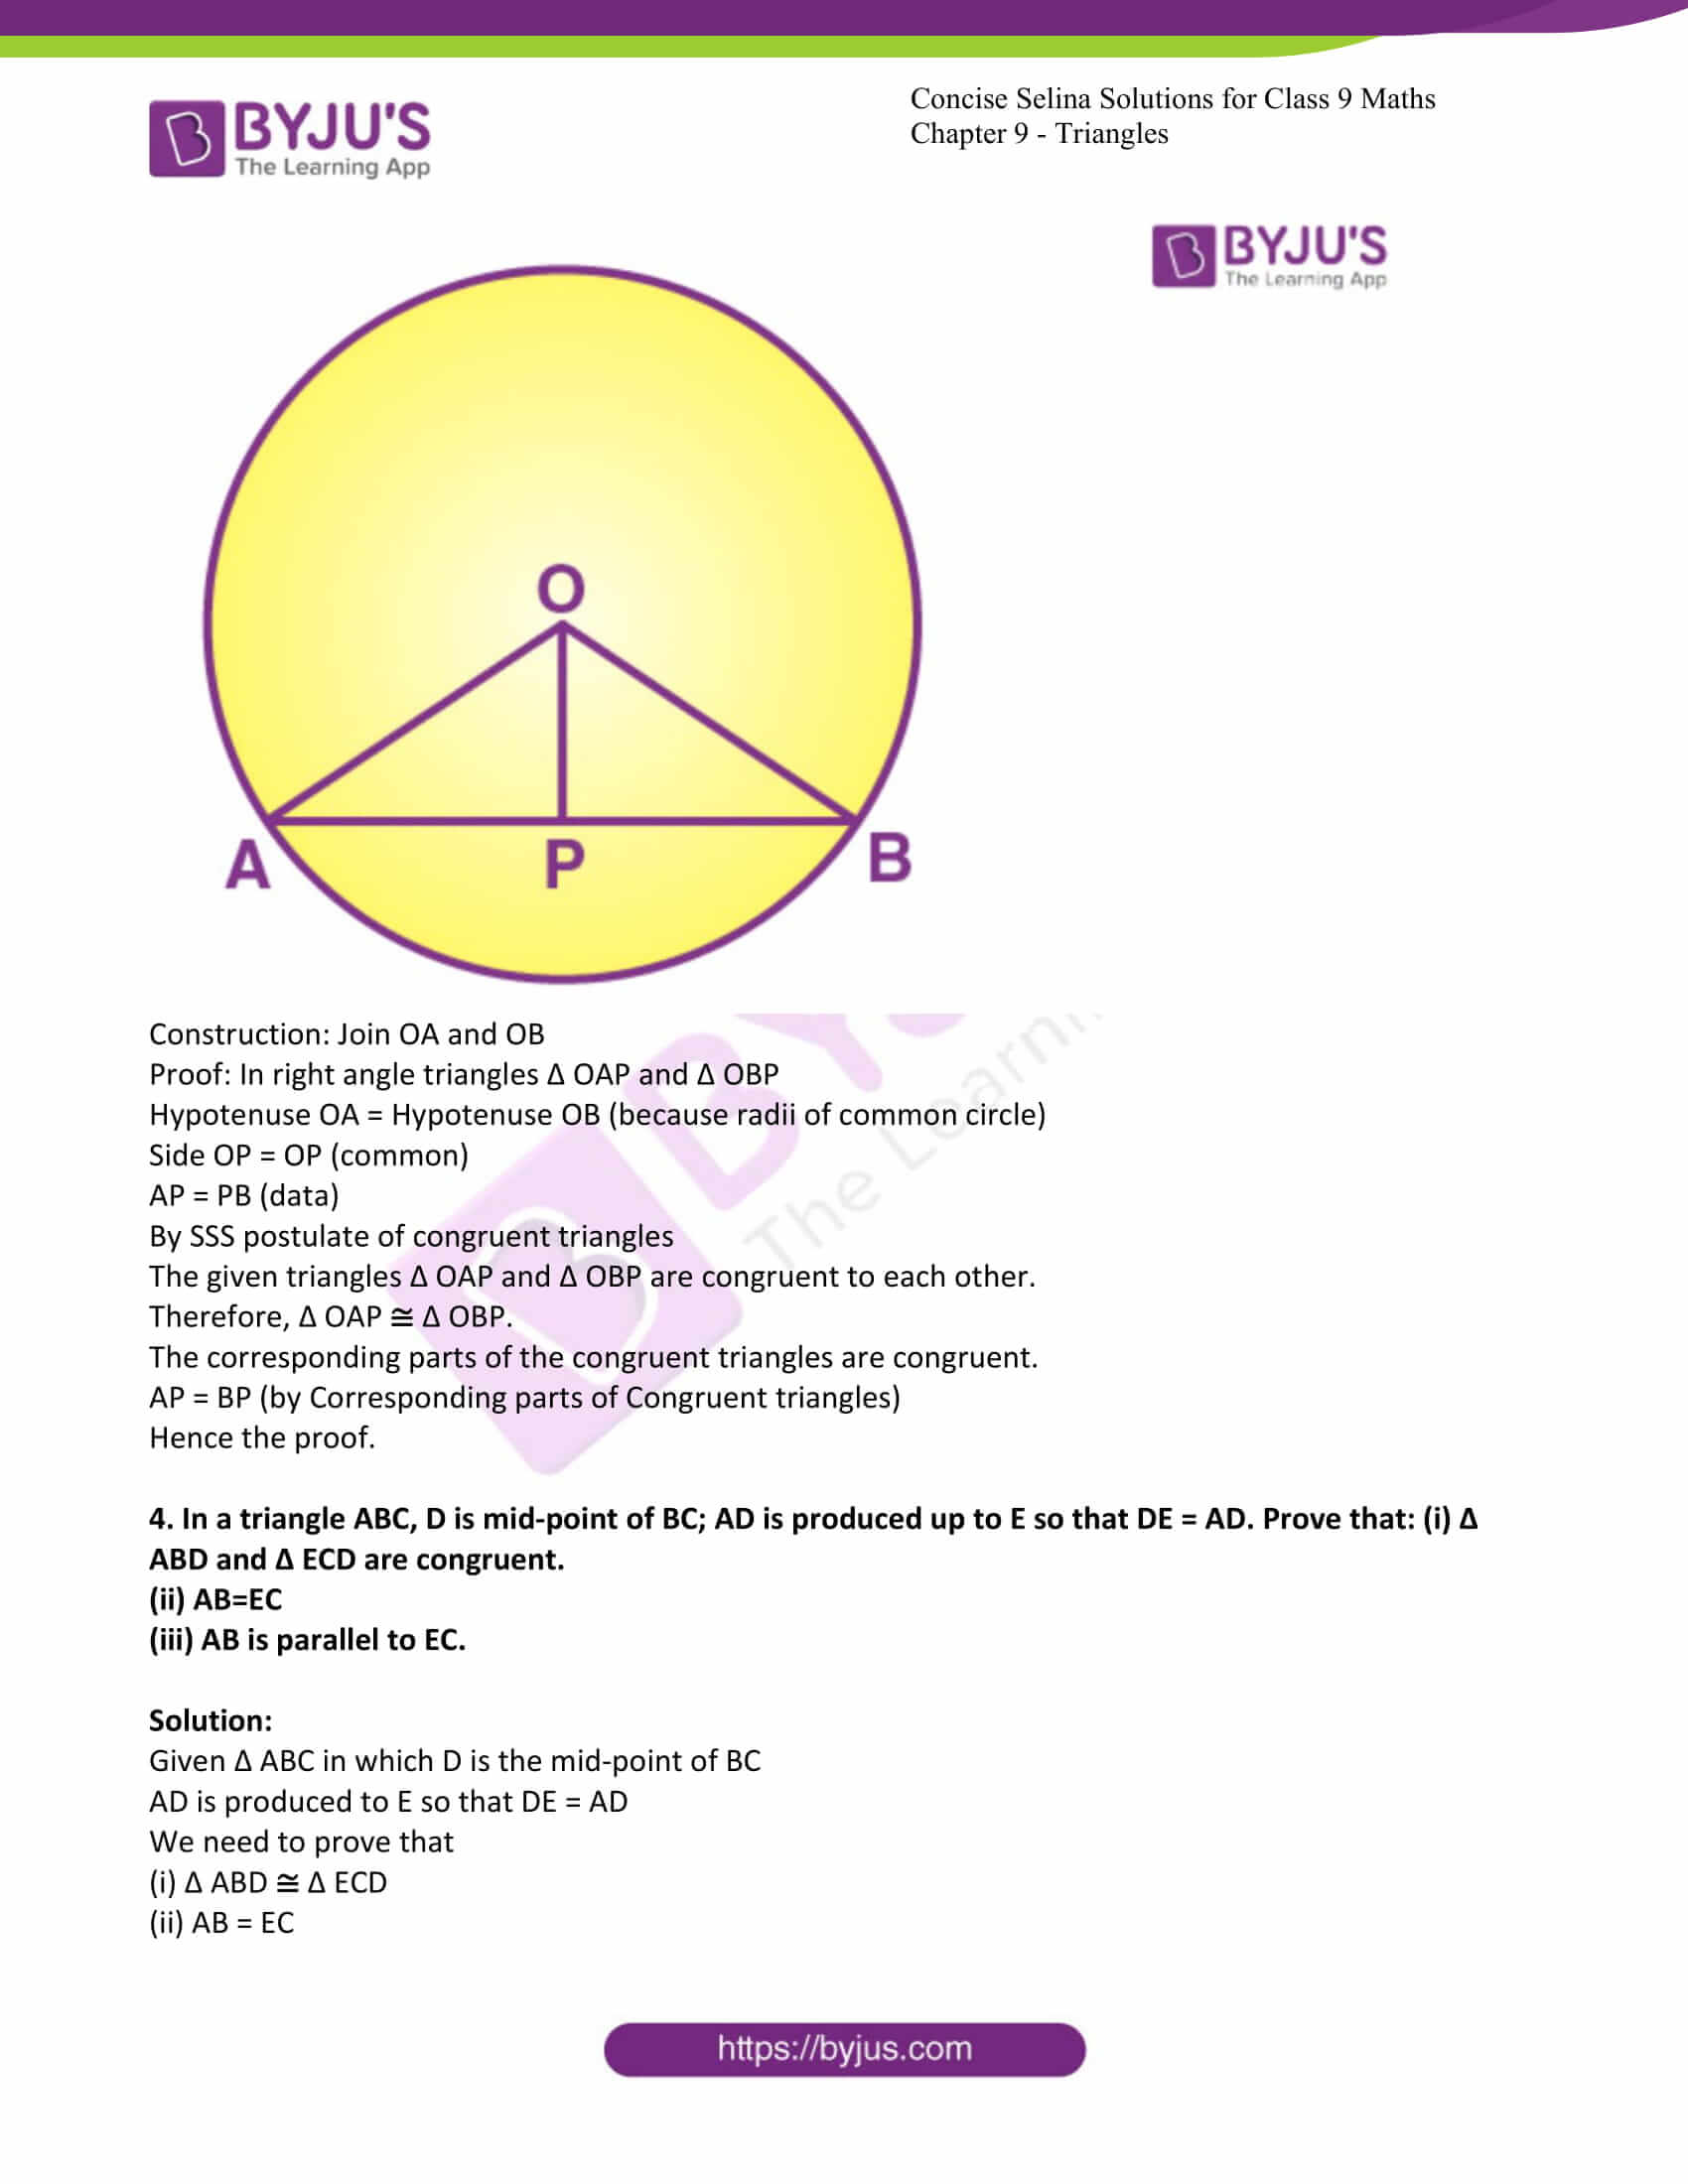 icse class 9 maths may10 selina solutions chapter 9 triangles 07